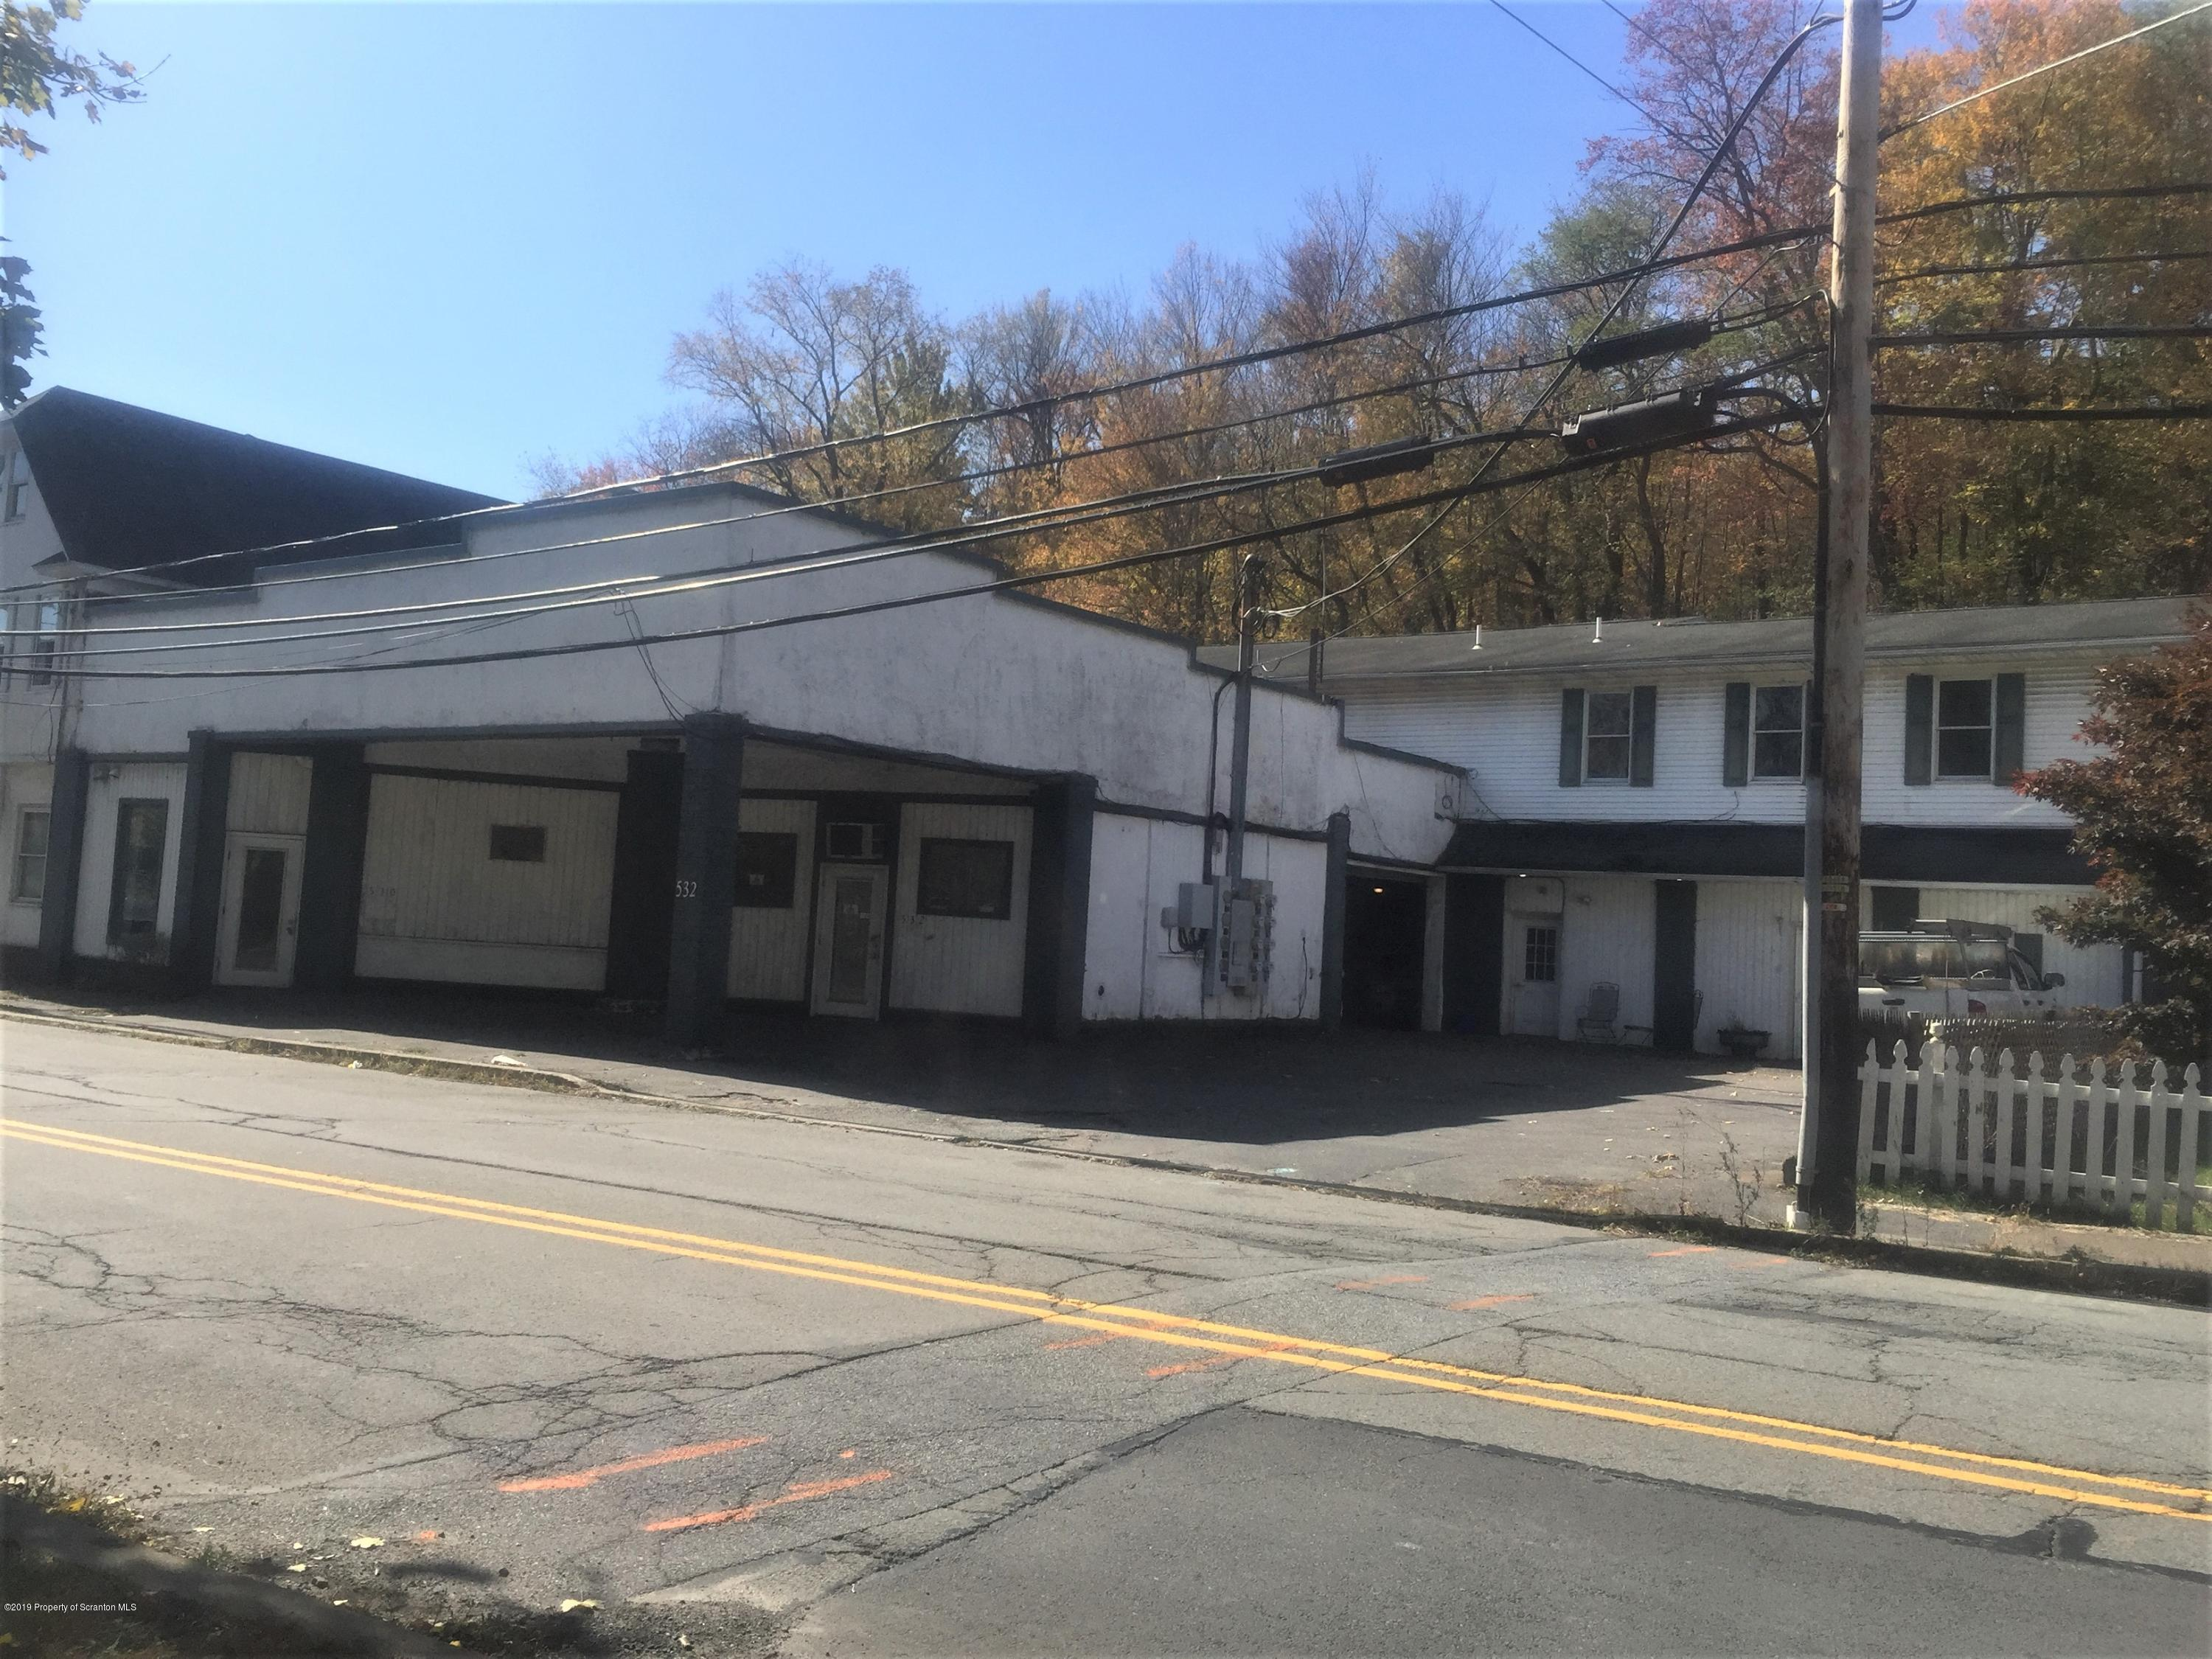 532 Main St, Archbald, Pennsylvania 18403, ,1 BathroomBathrooms,Commercial,For Sale,Main,19-5146